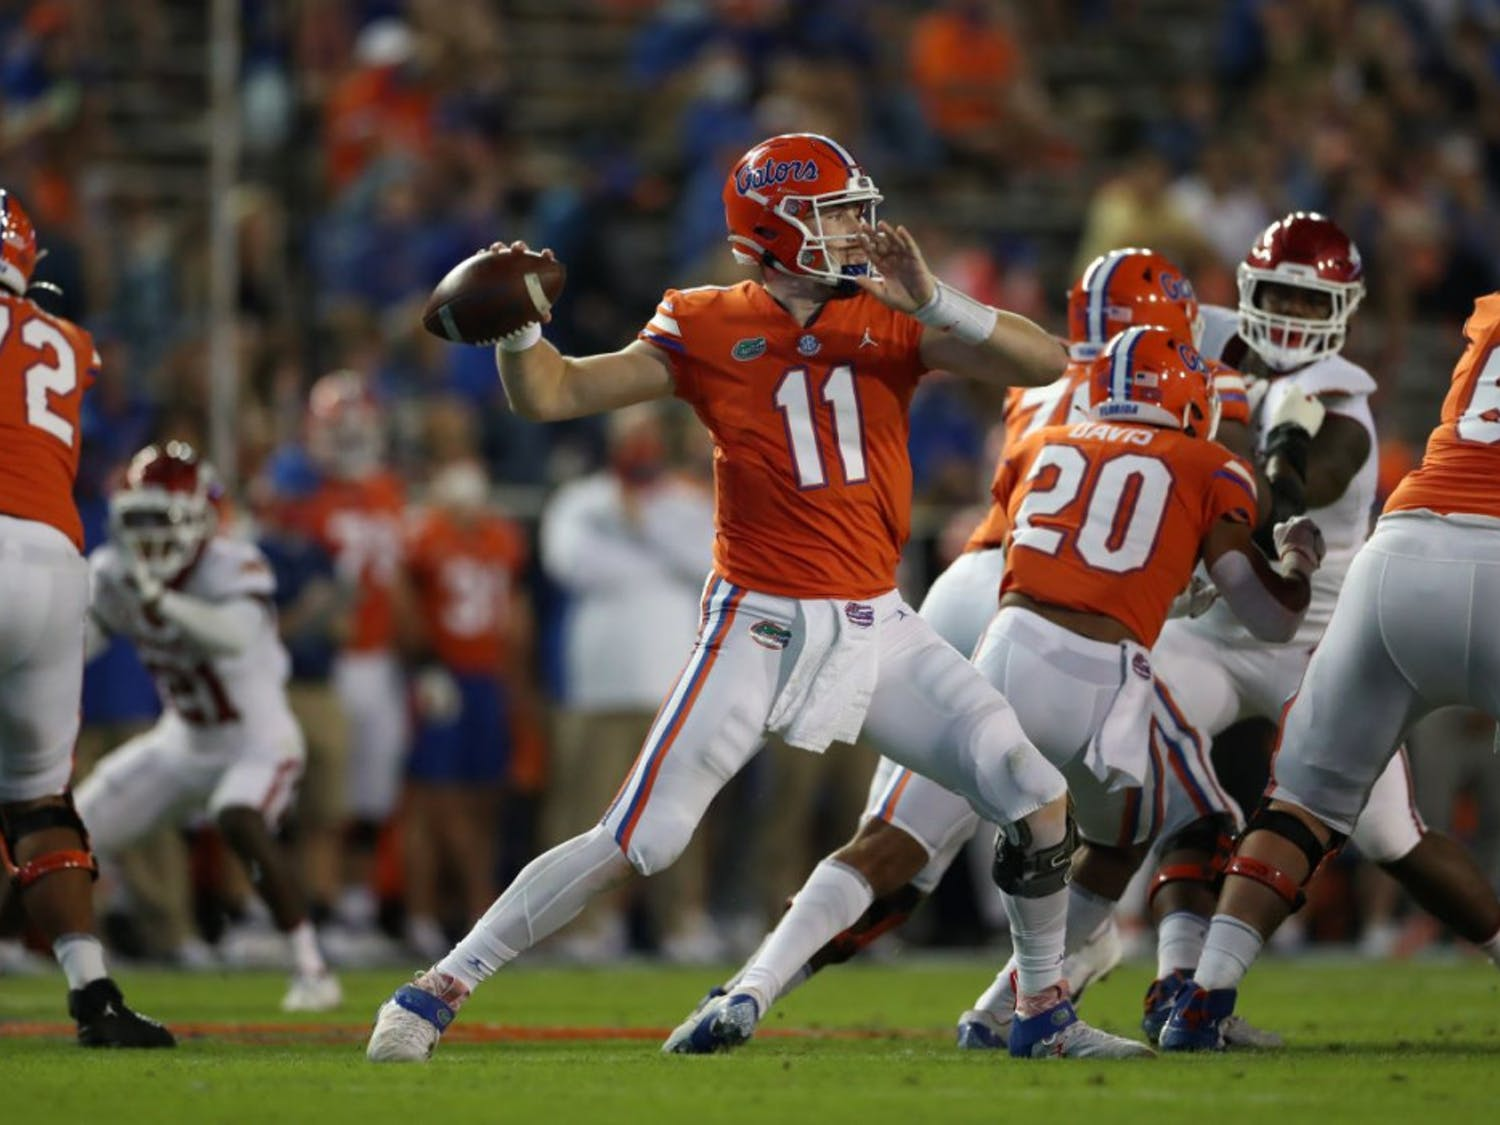 Gators quarterback Kyle Trask winds up to throw the football during Florida's game versus Arkansas at Ben Hill Griffin Stadium on Nov. 14. After Saturday night's performance, many media members and Gators fans see Trask as the frontrunner for the 2020 Heisman Trophy award.